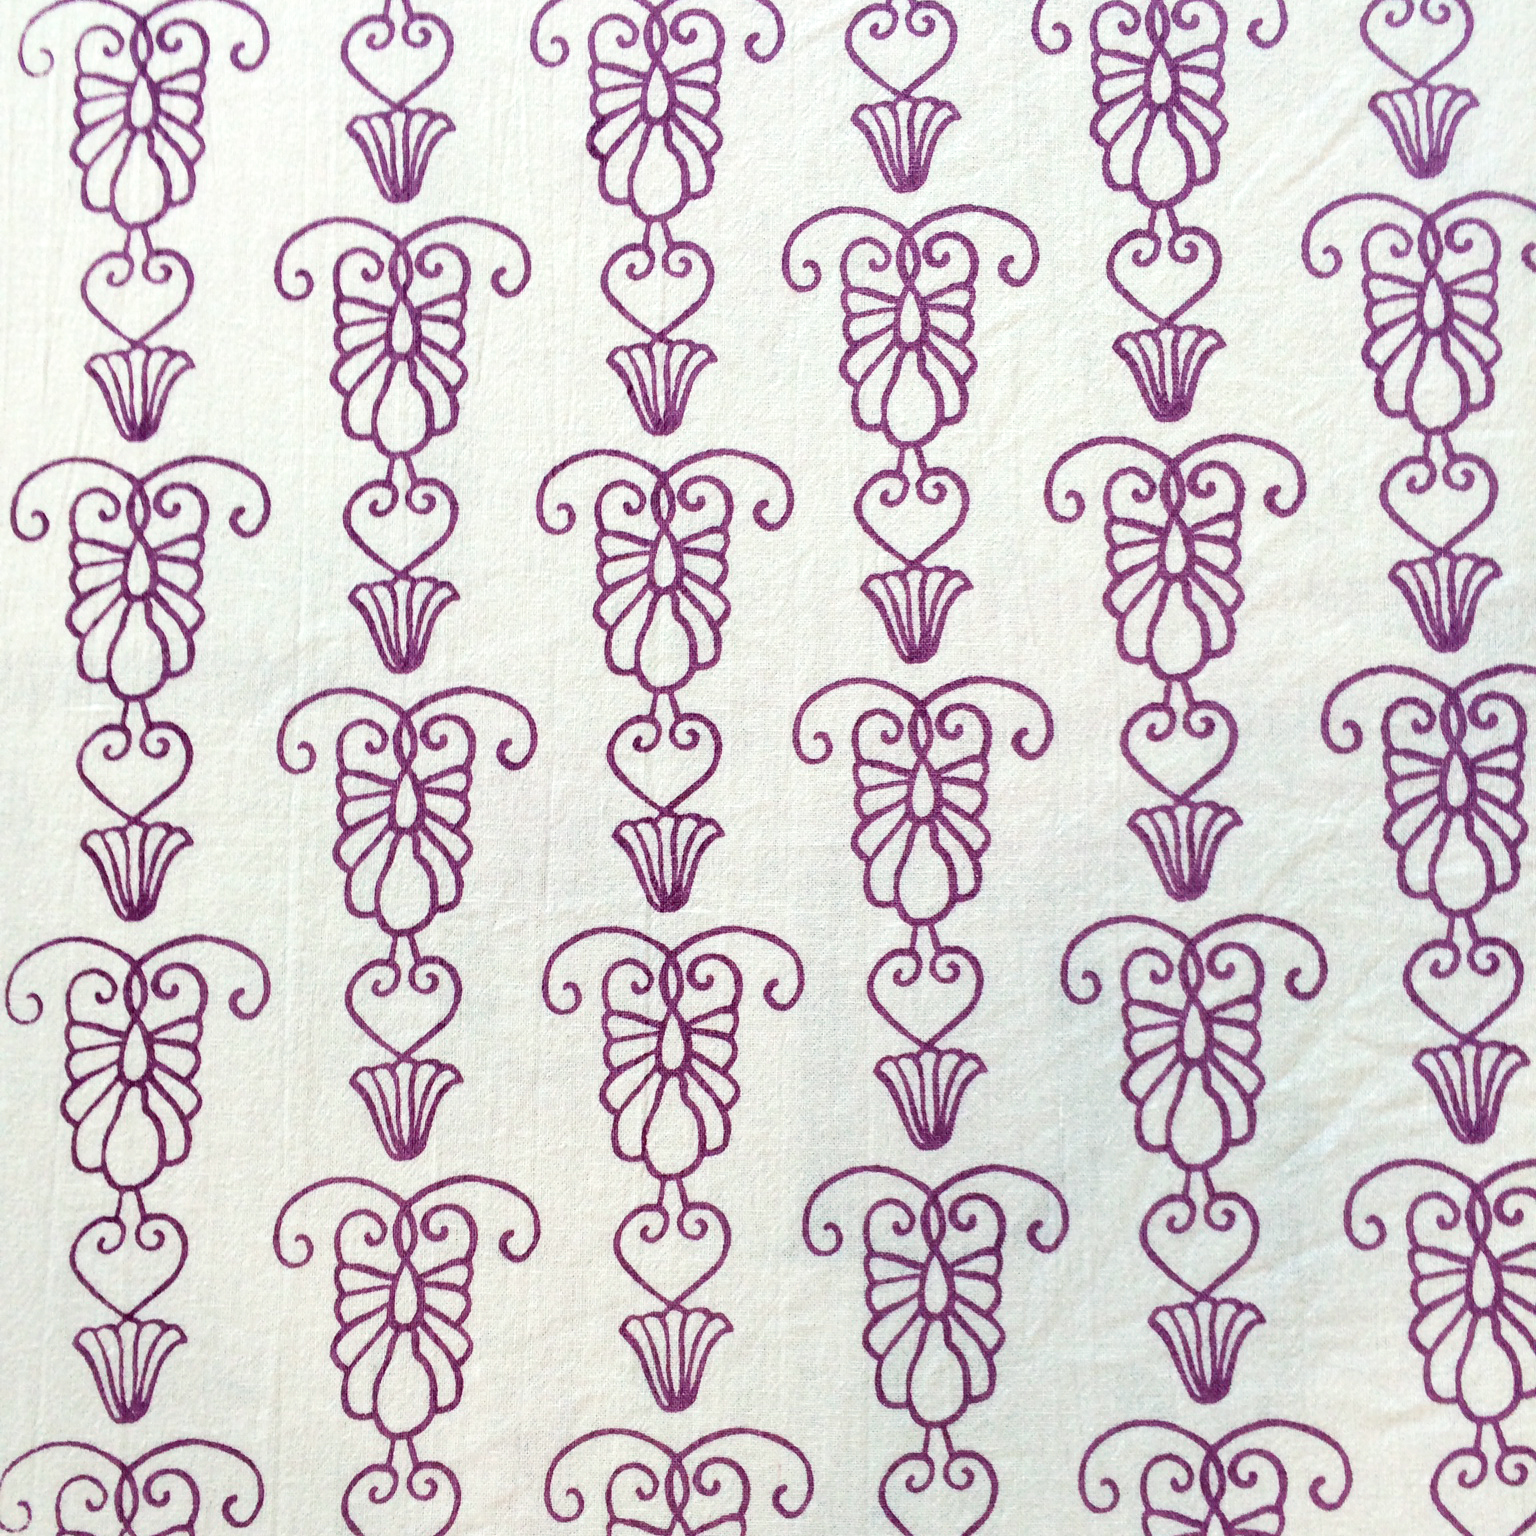 Iron Gate Screen Print by For the Love of Pattern #loveofpattern www.loveofpattern.com - Savannah Ironwork Collection